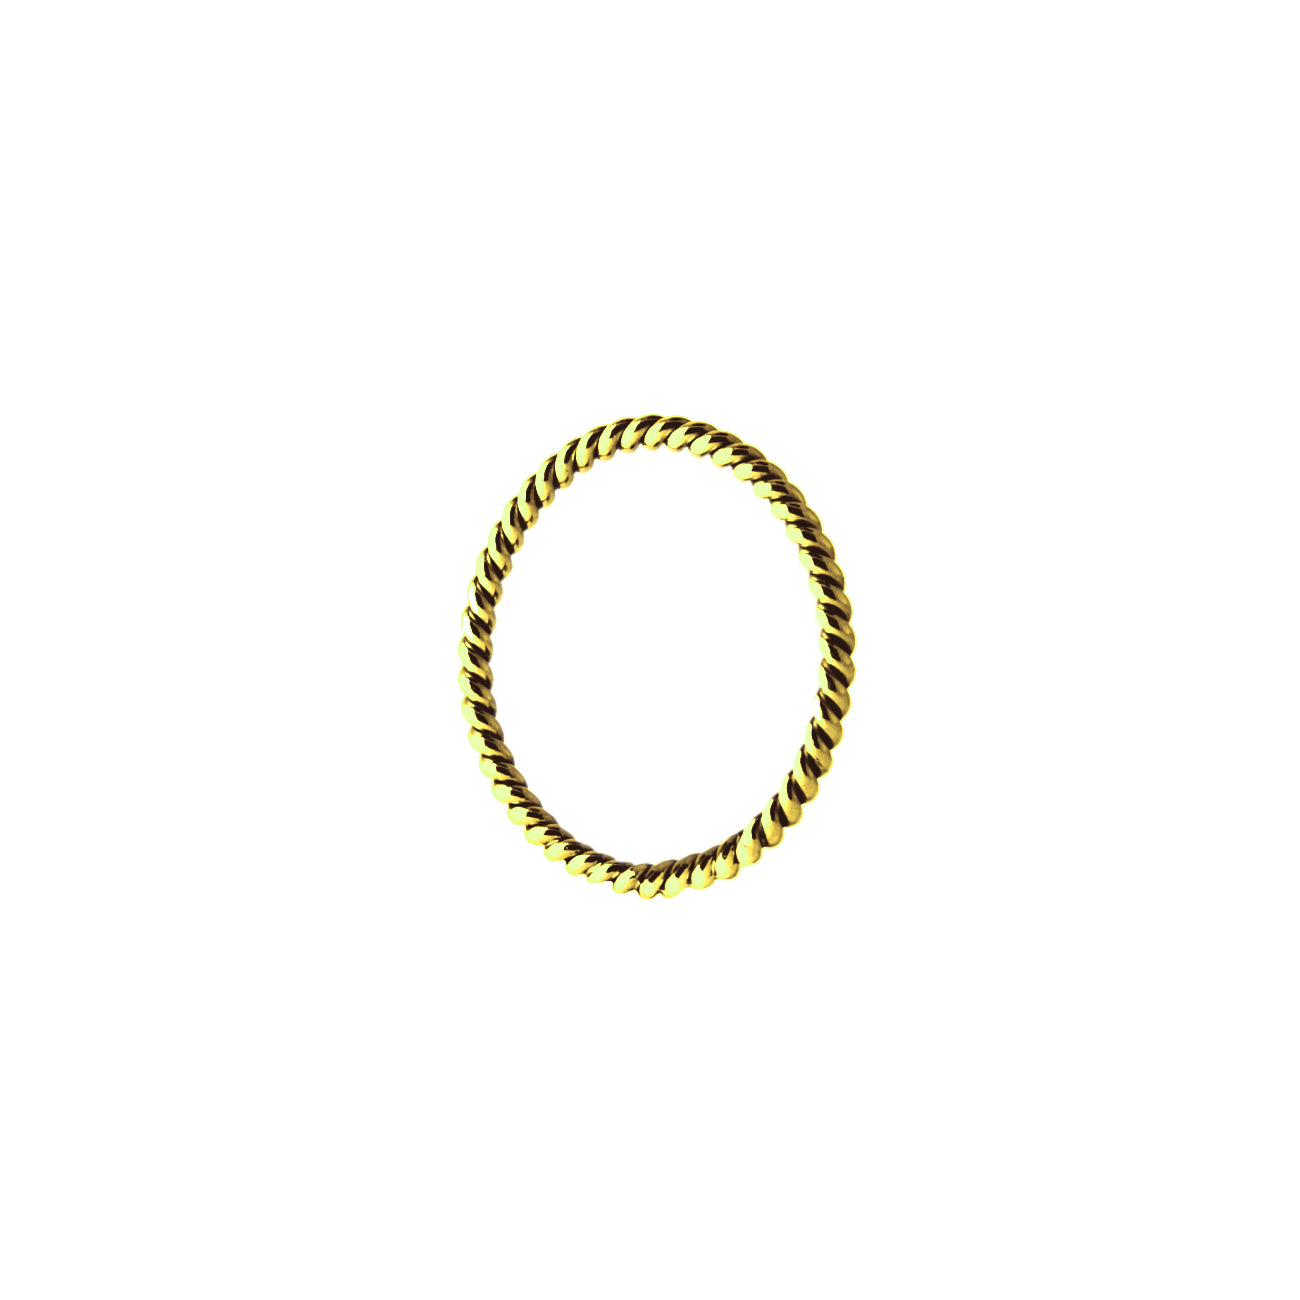 Twist Rings (Includes Options)